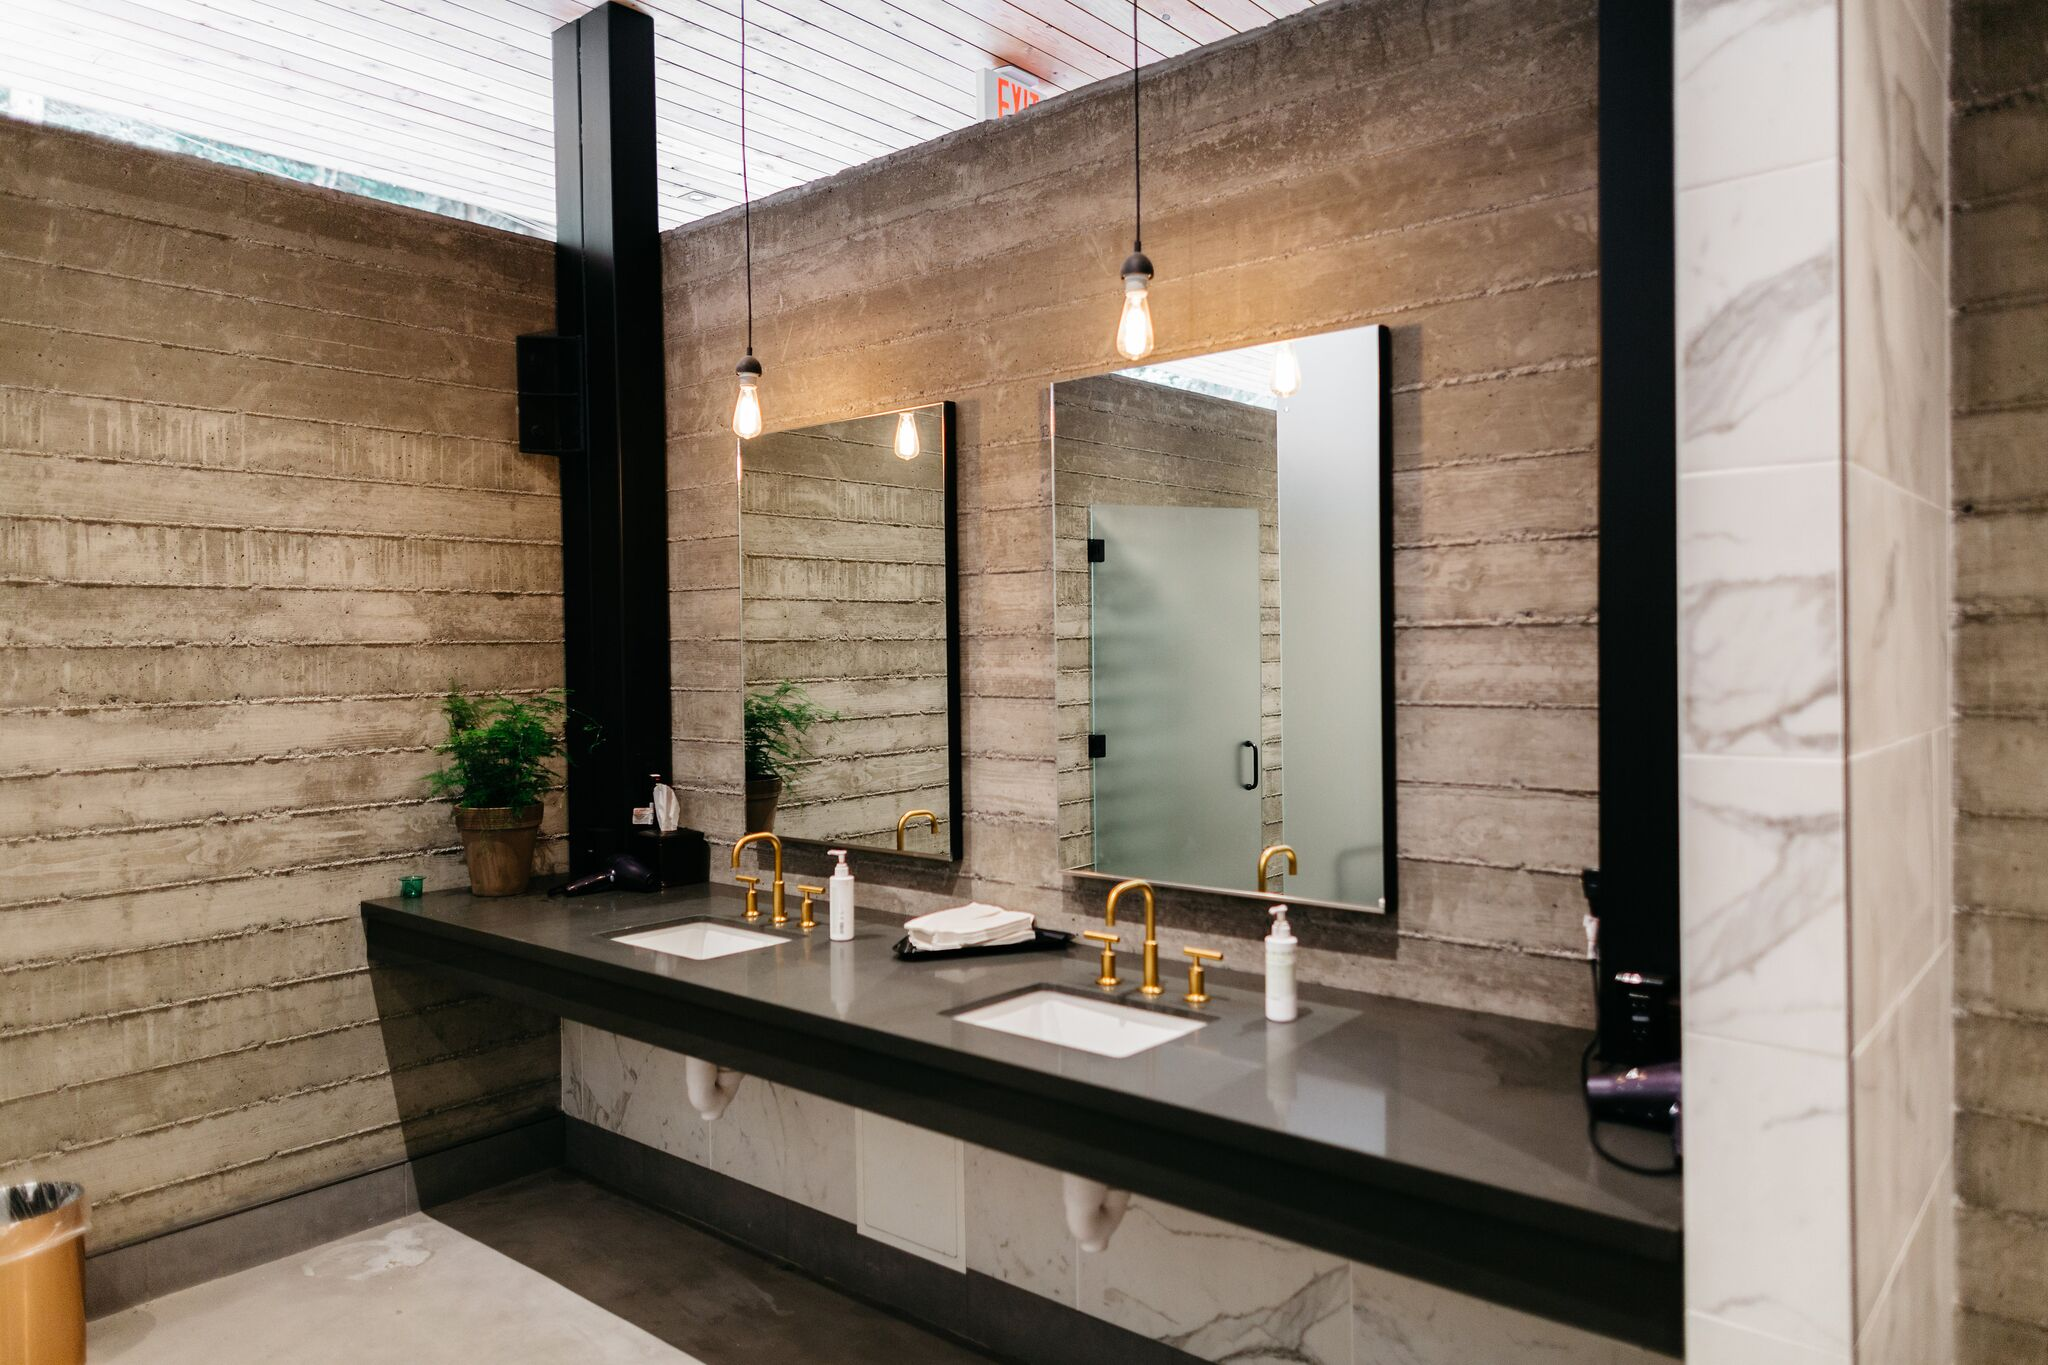 Inside the communal spa-inspired bathrooms in clubhouse. Photo Melanie Riccardi